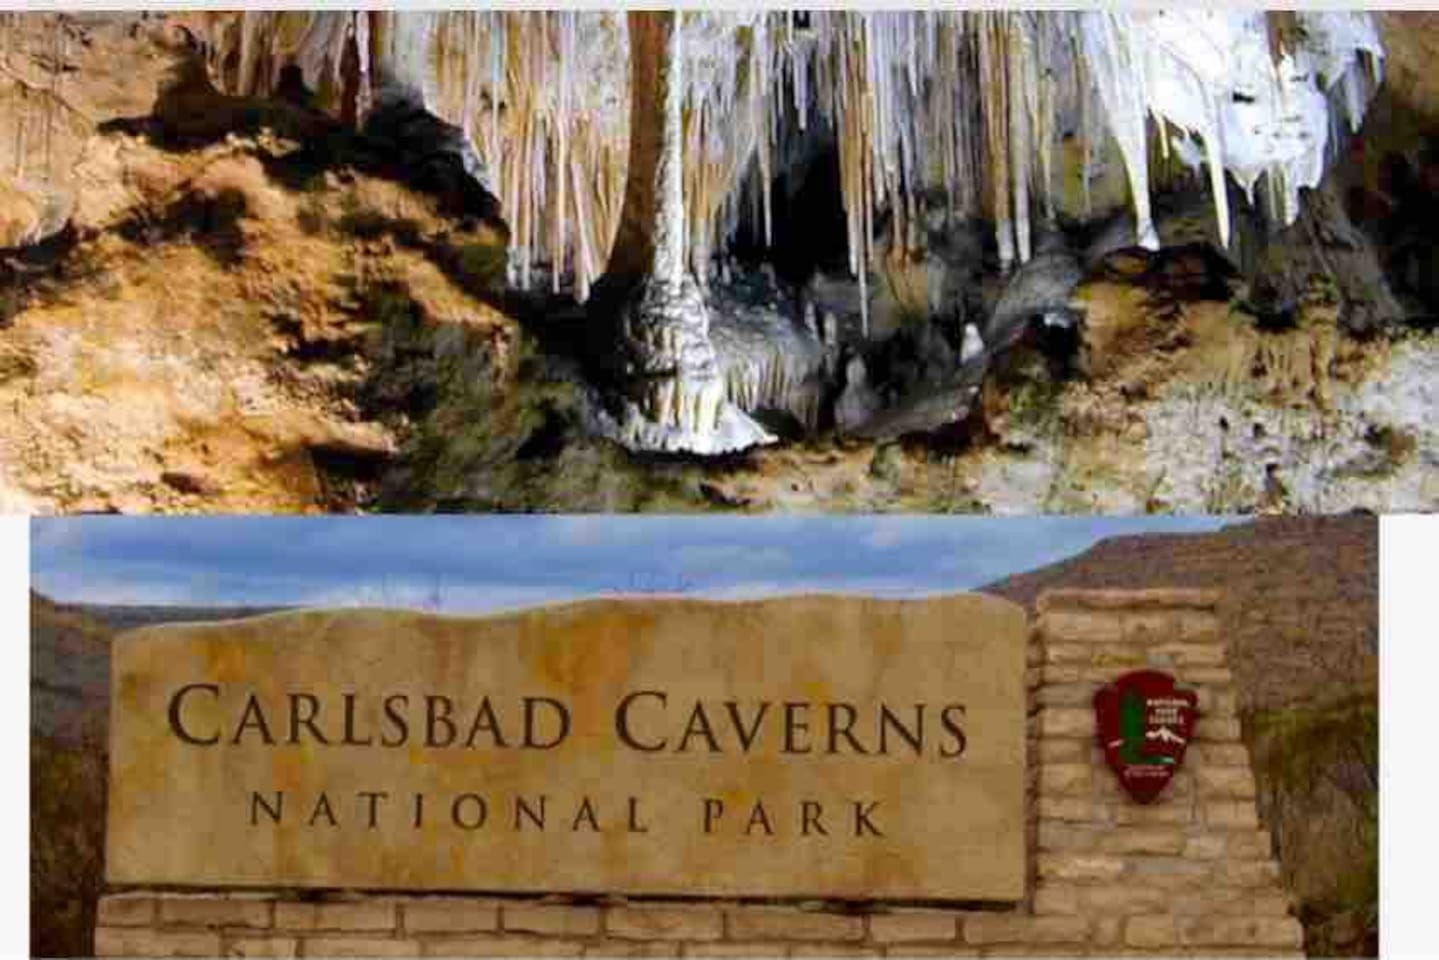 30 minutes away from the Carlsbad Caverns